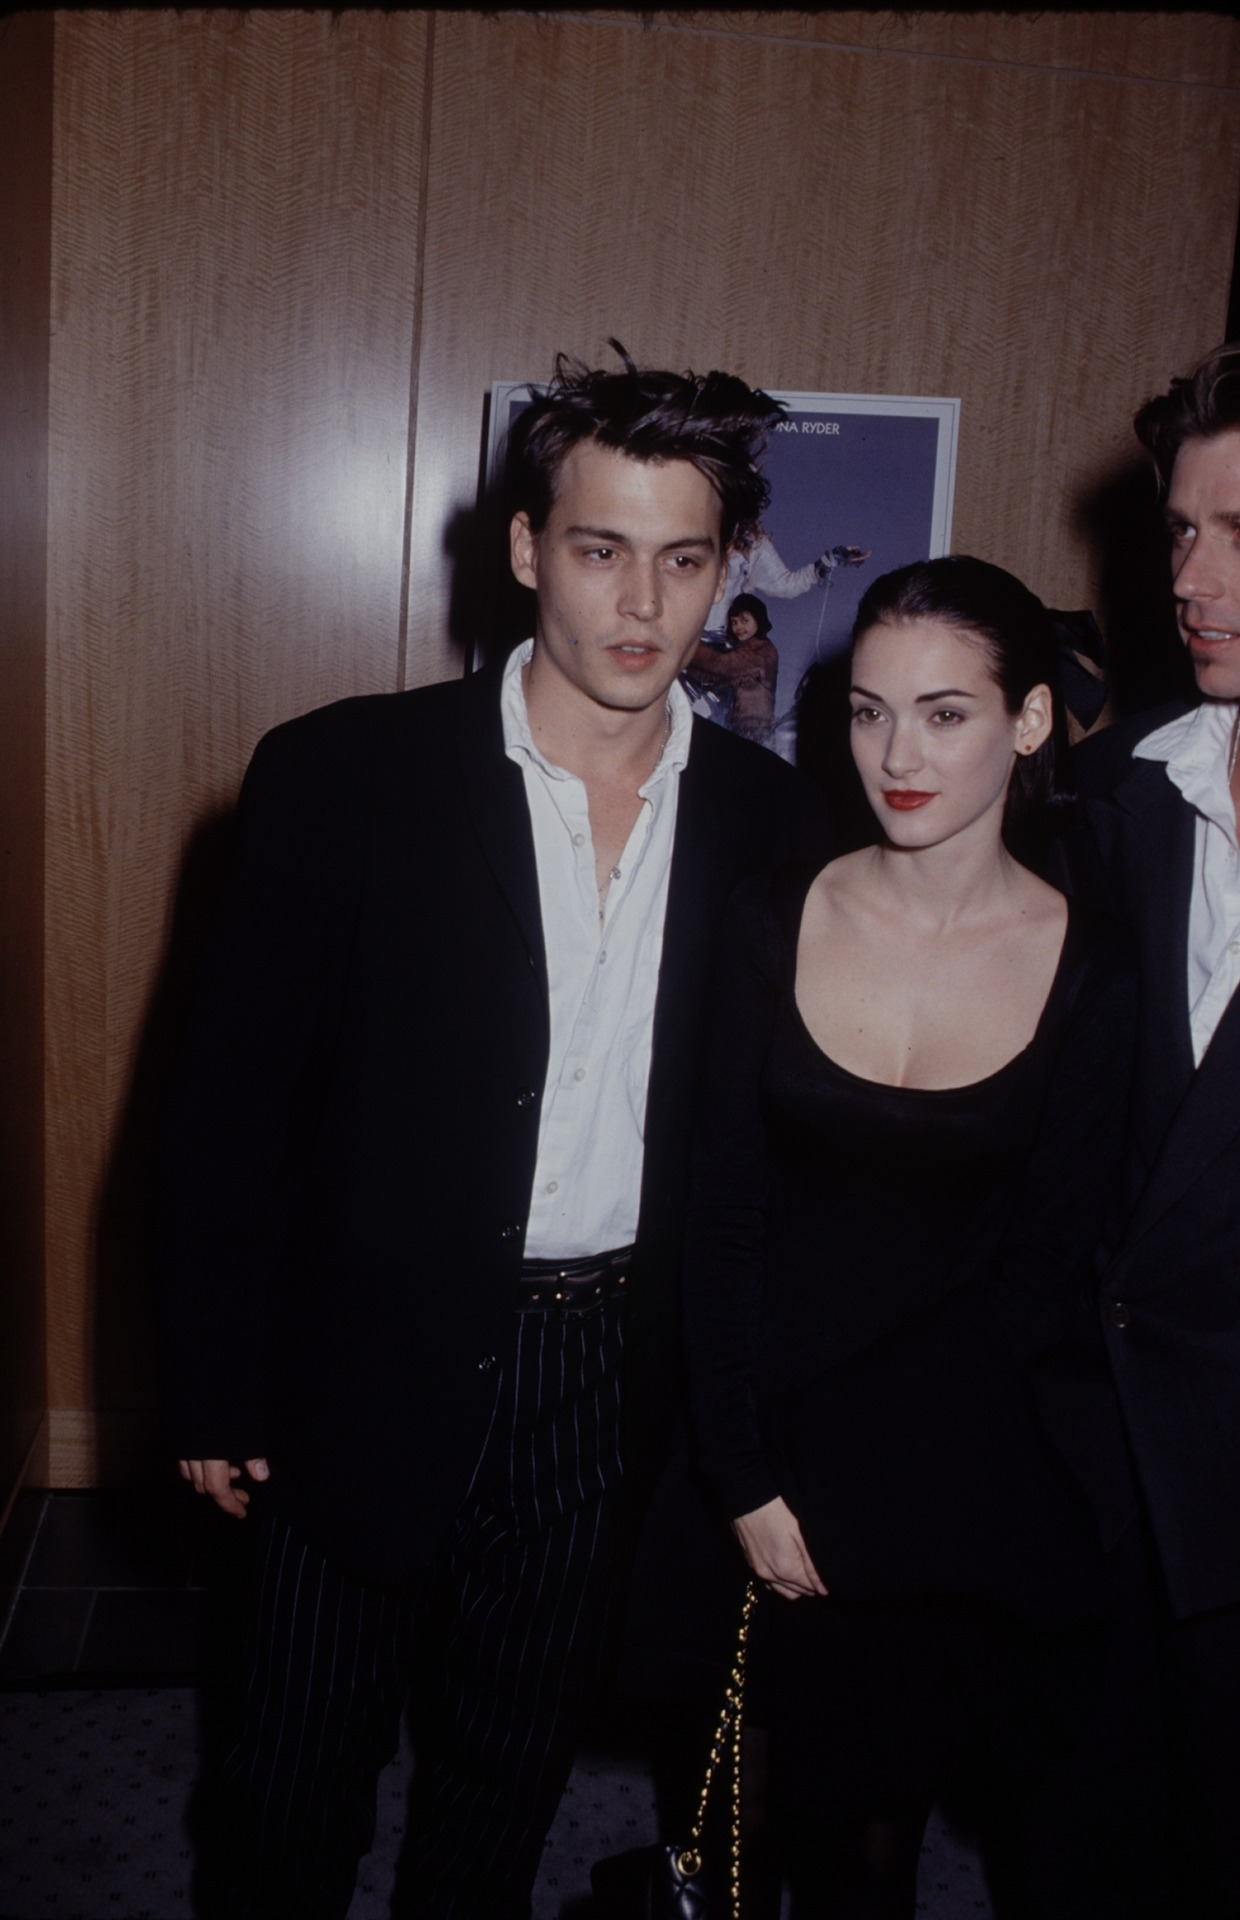 suicideblonde:  Johnny Depp and Winona Ryder at the Mermaids premiere in 1989